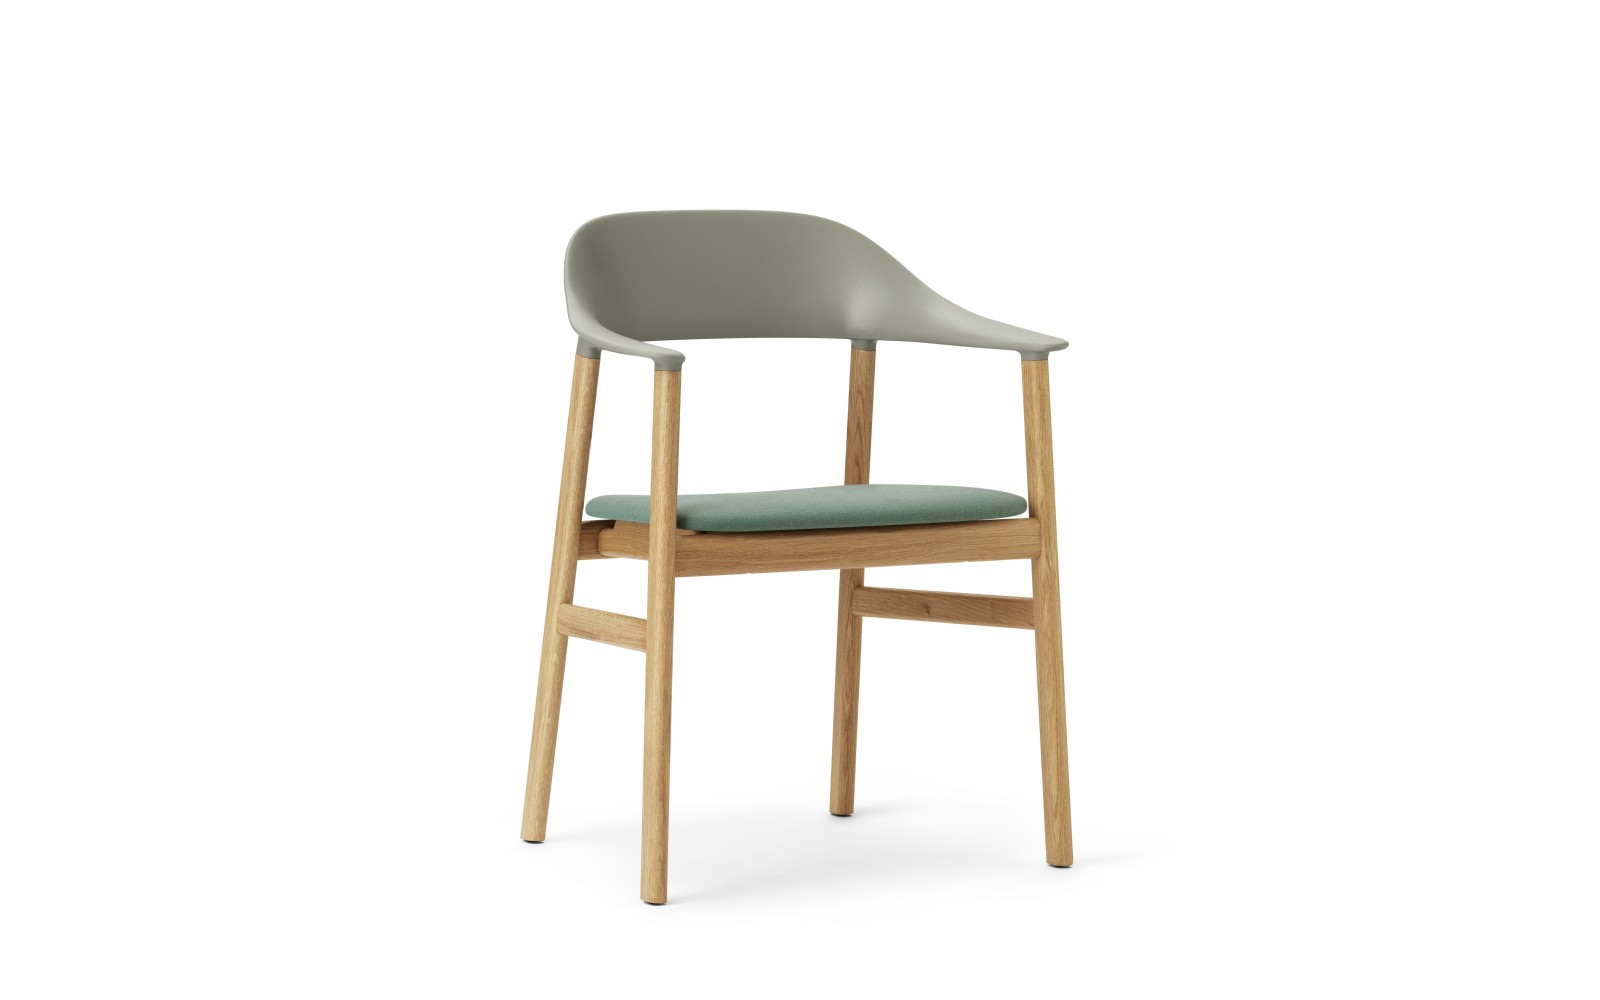 Herit Dining Chair with Armrests and Upholstered Seat Synergy Dusty Green, Oak